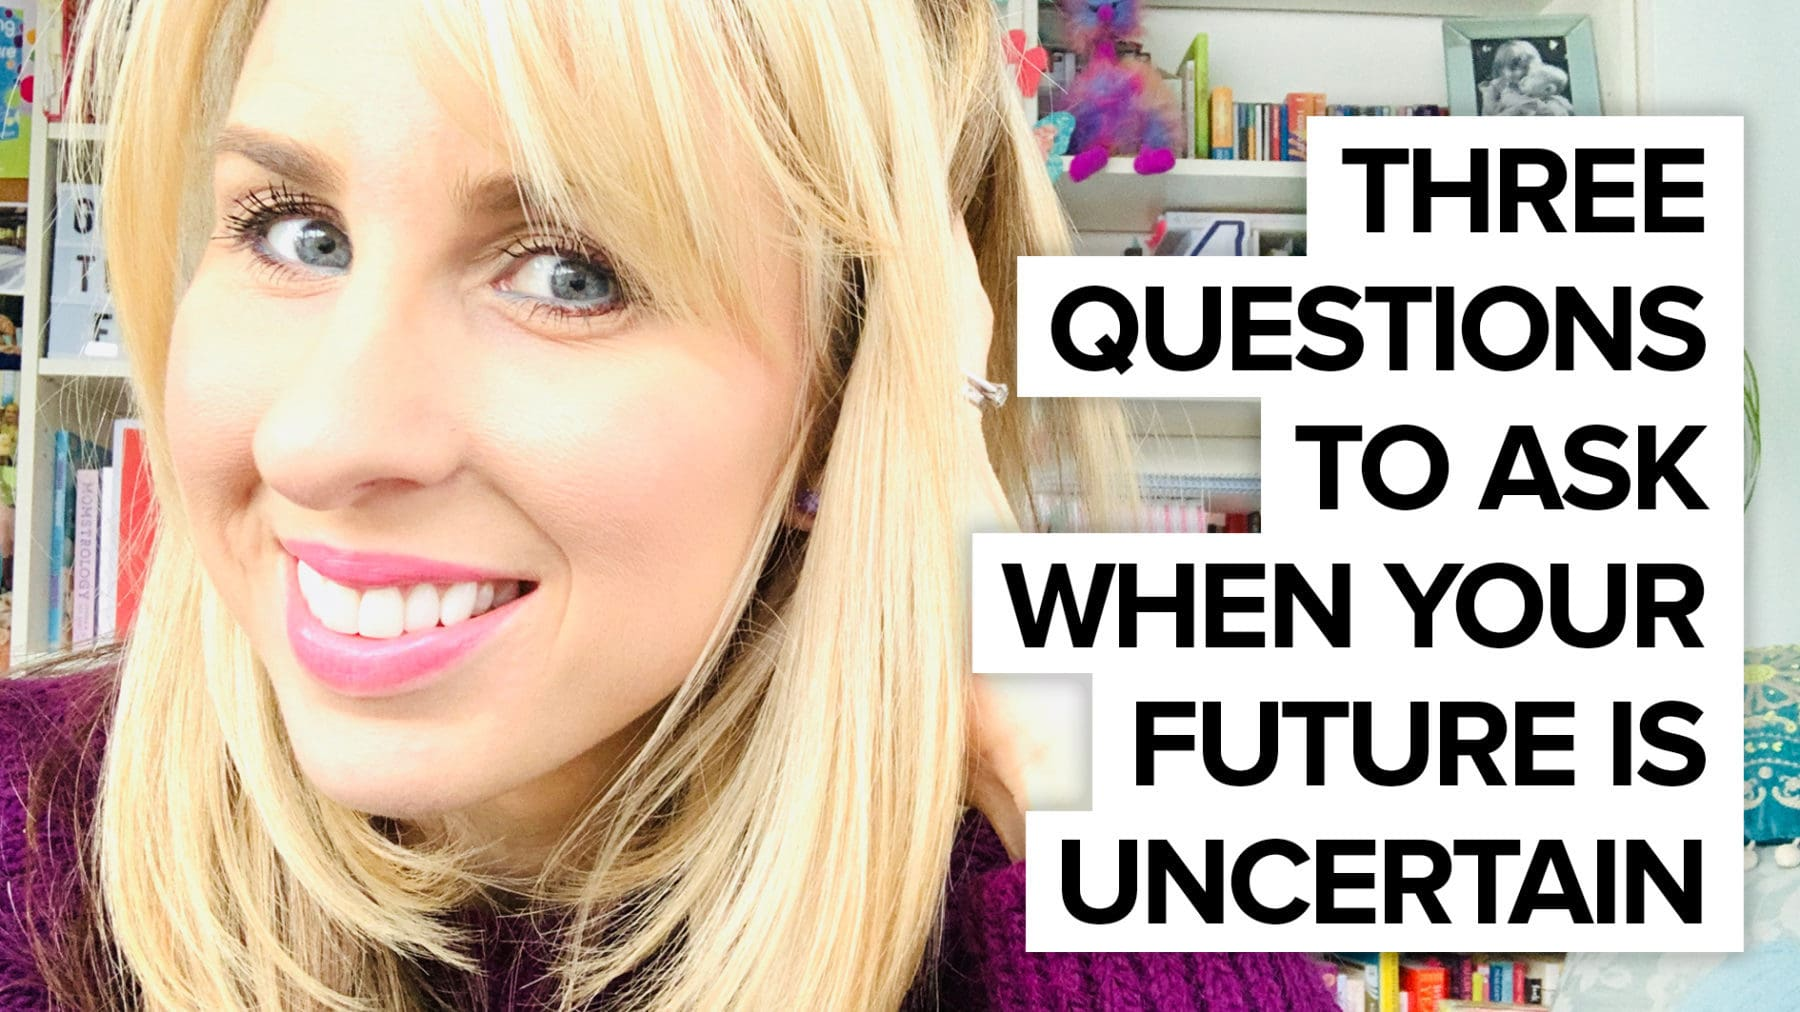 3 Questions to Ask when Your Future is Uncertain